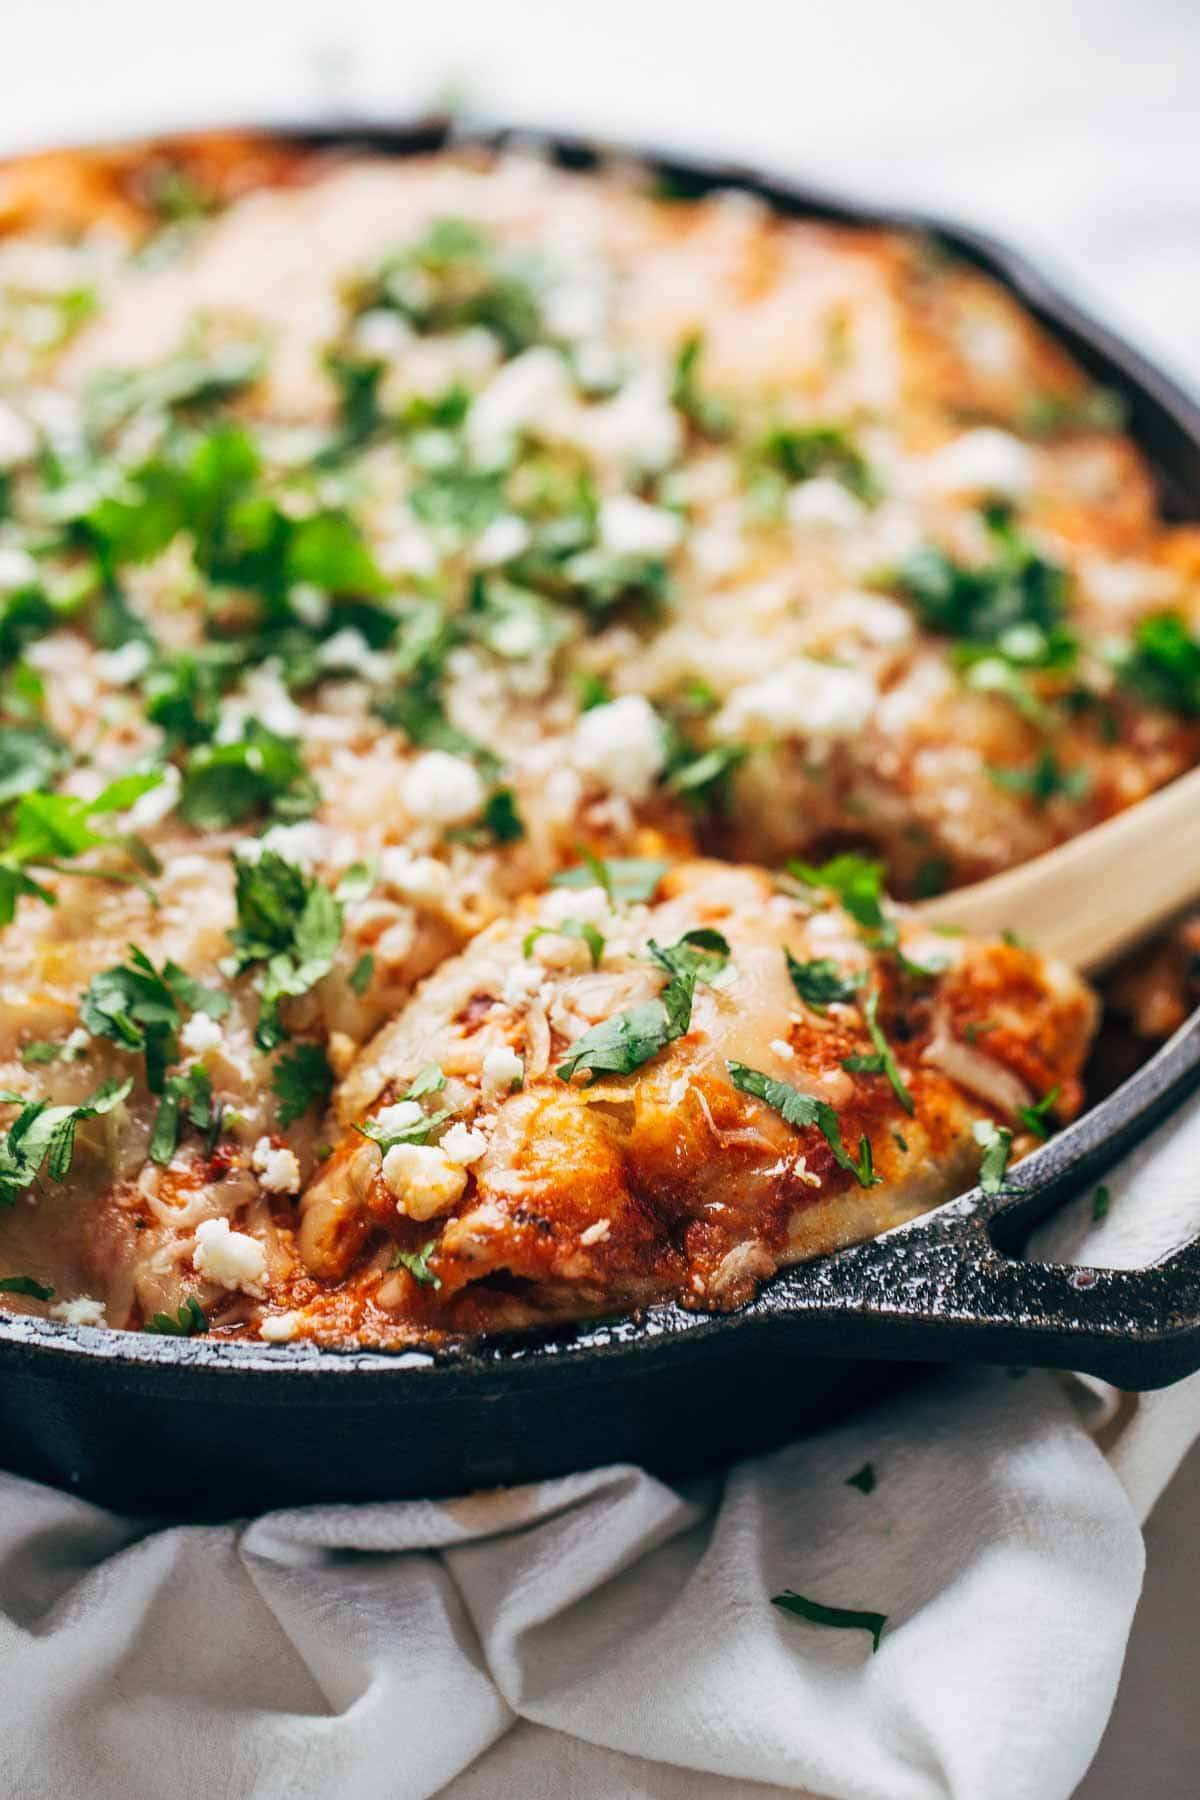 Skillet Chicken Tortilla Pie